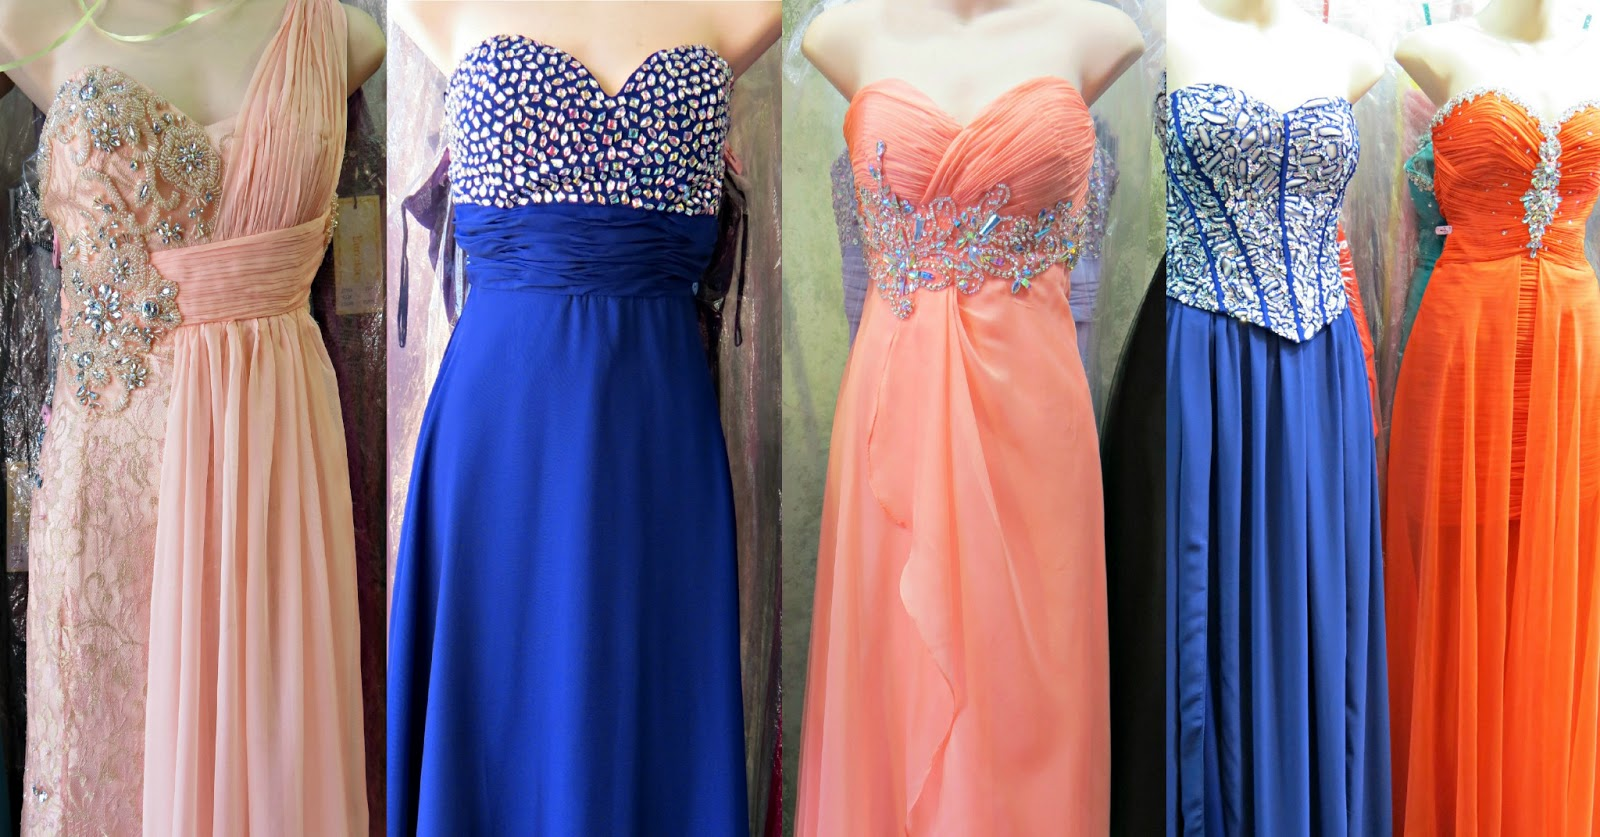 Light dresses blog: Designer prom dresses los angeles